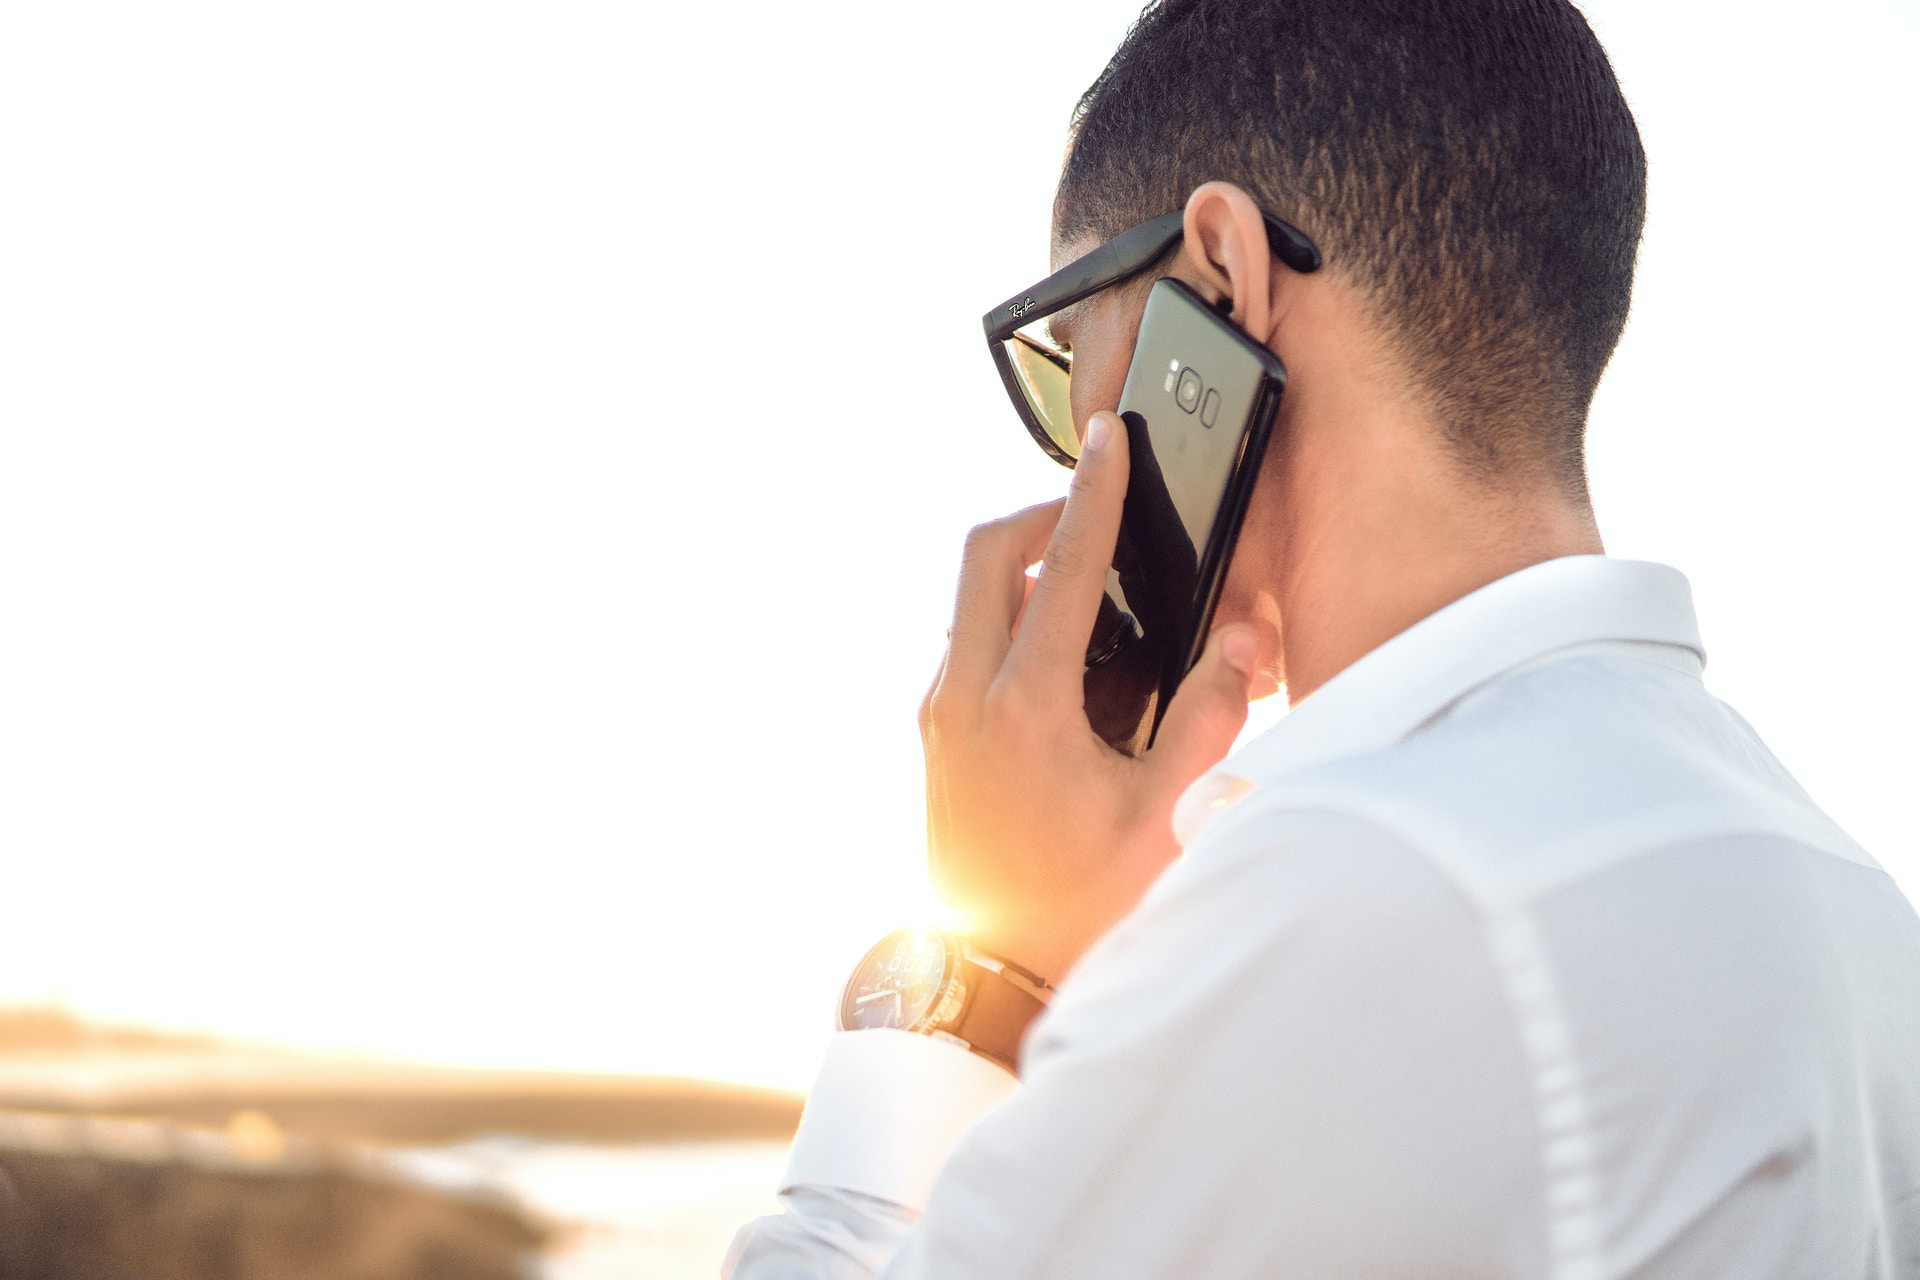 person wearing sunglasses holding a mobile phone to their ear